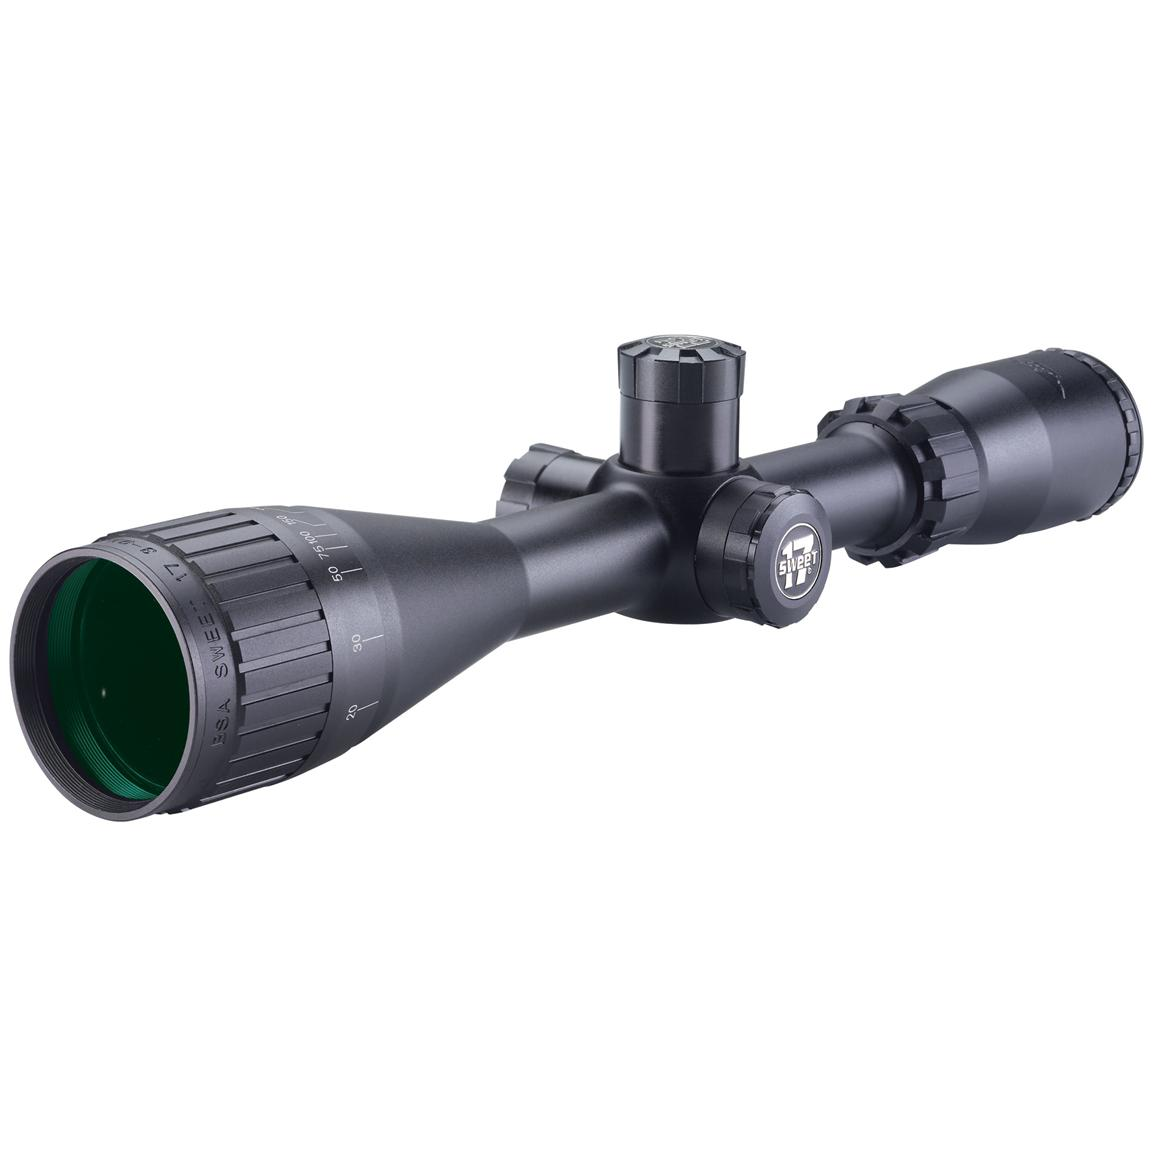 BSA Optics® 3-9x40 Sweet 17 Riflescope with Illuminated RGB